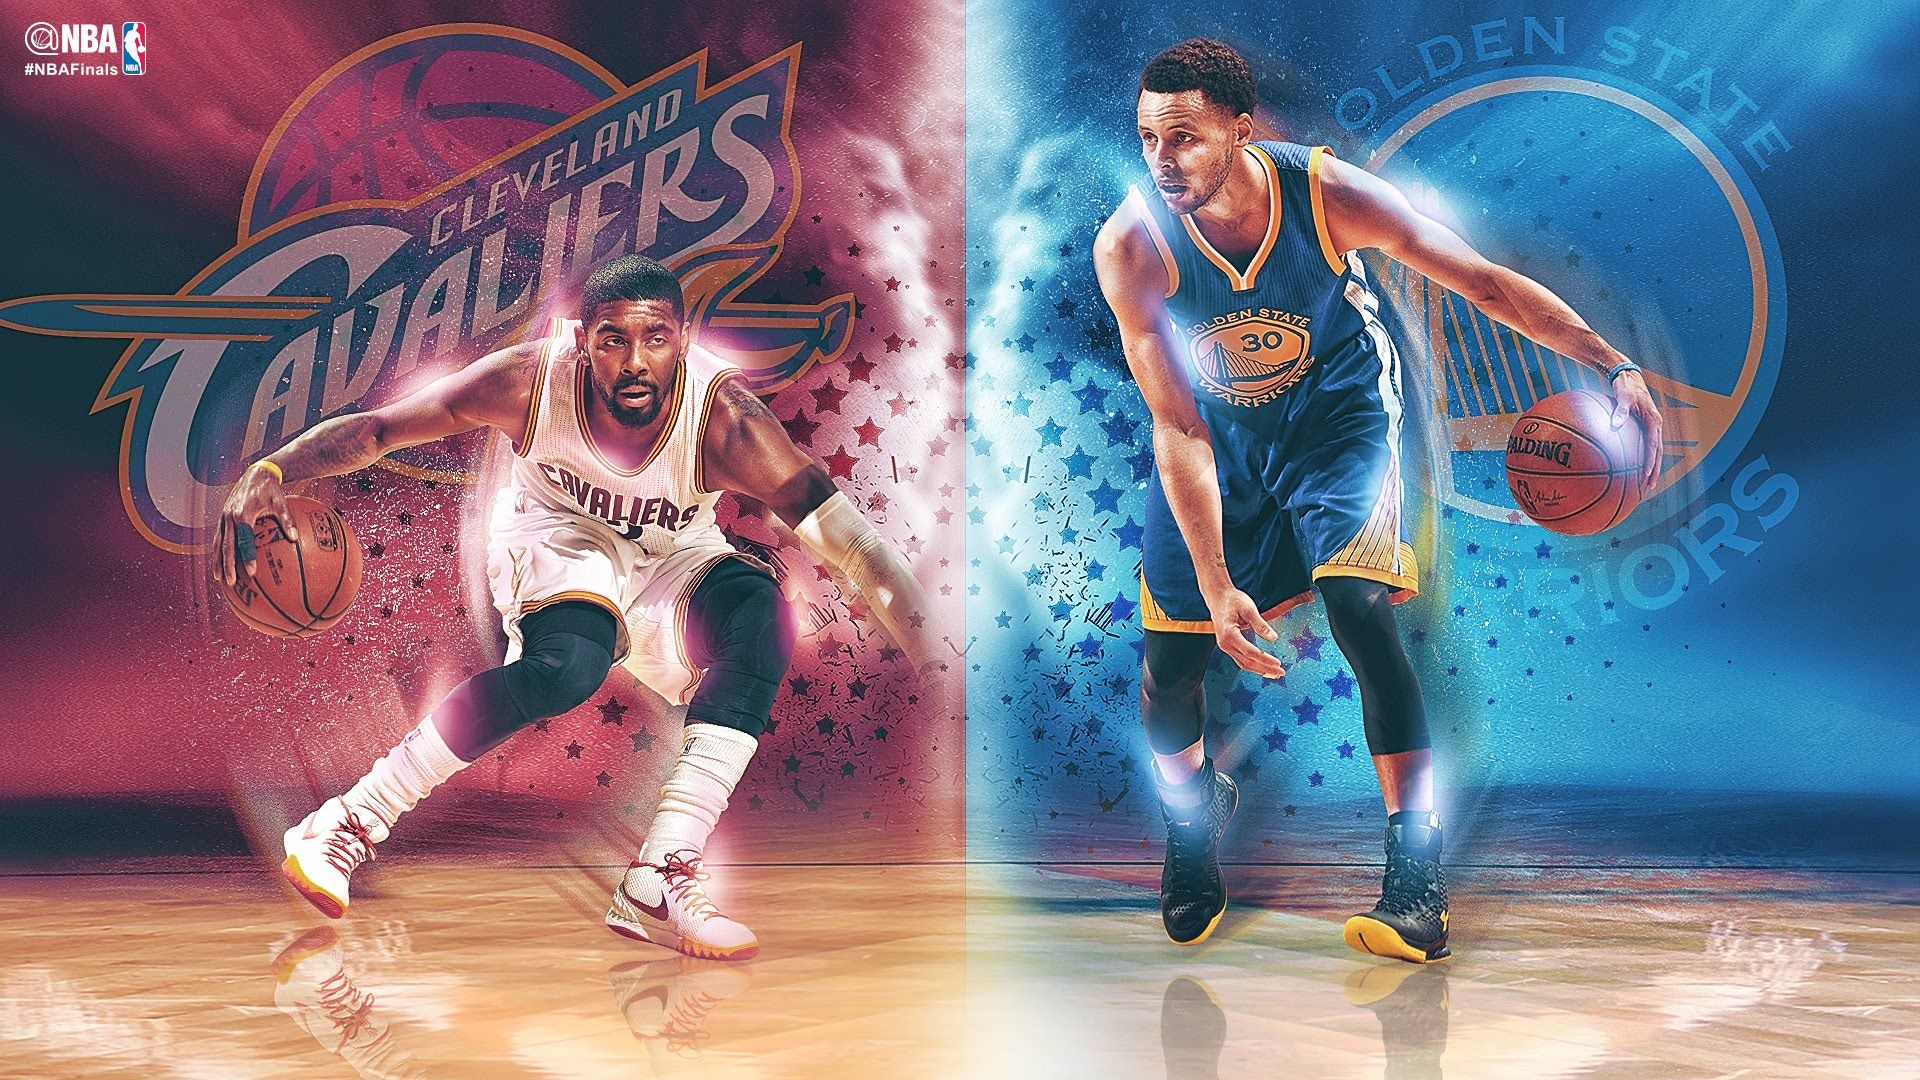 Stephen Curry vs Kyrie Irving  Who s Got The Best Handle  - YouTube ... 767f0afaf